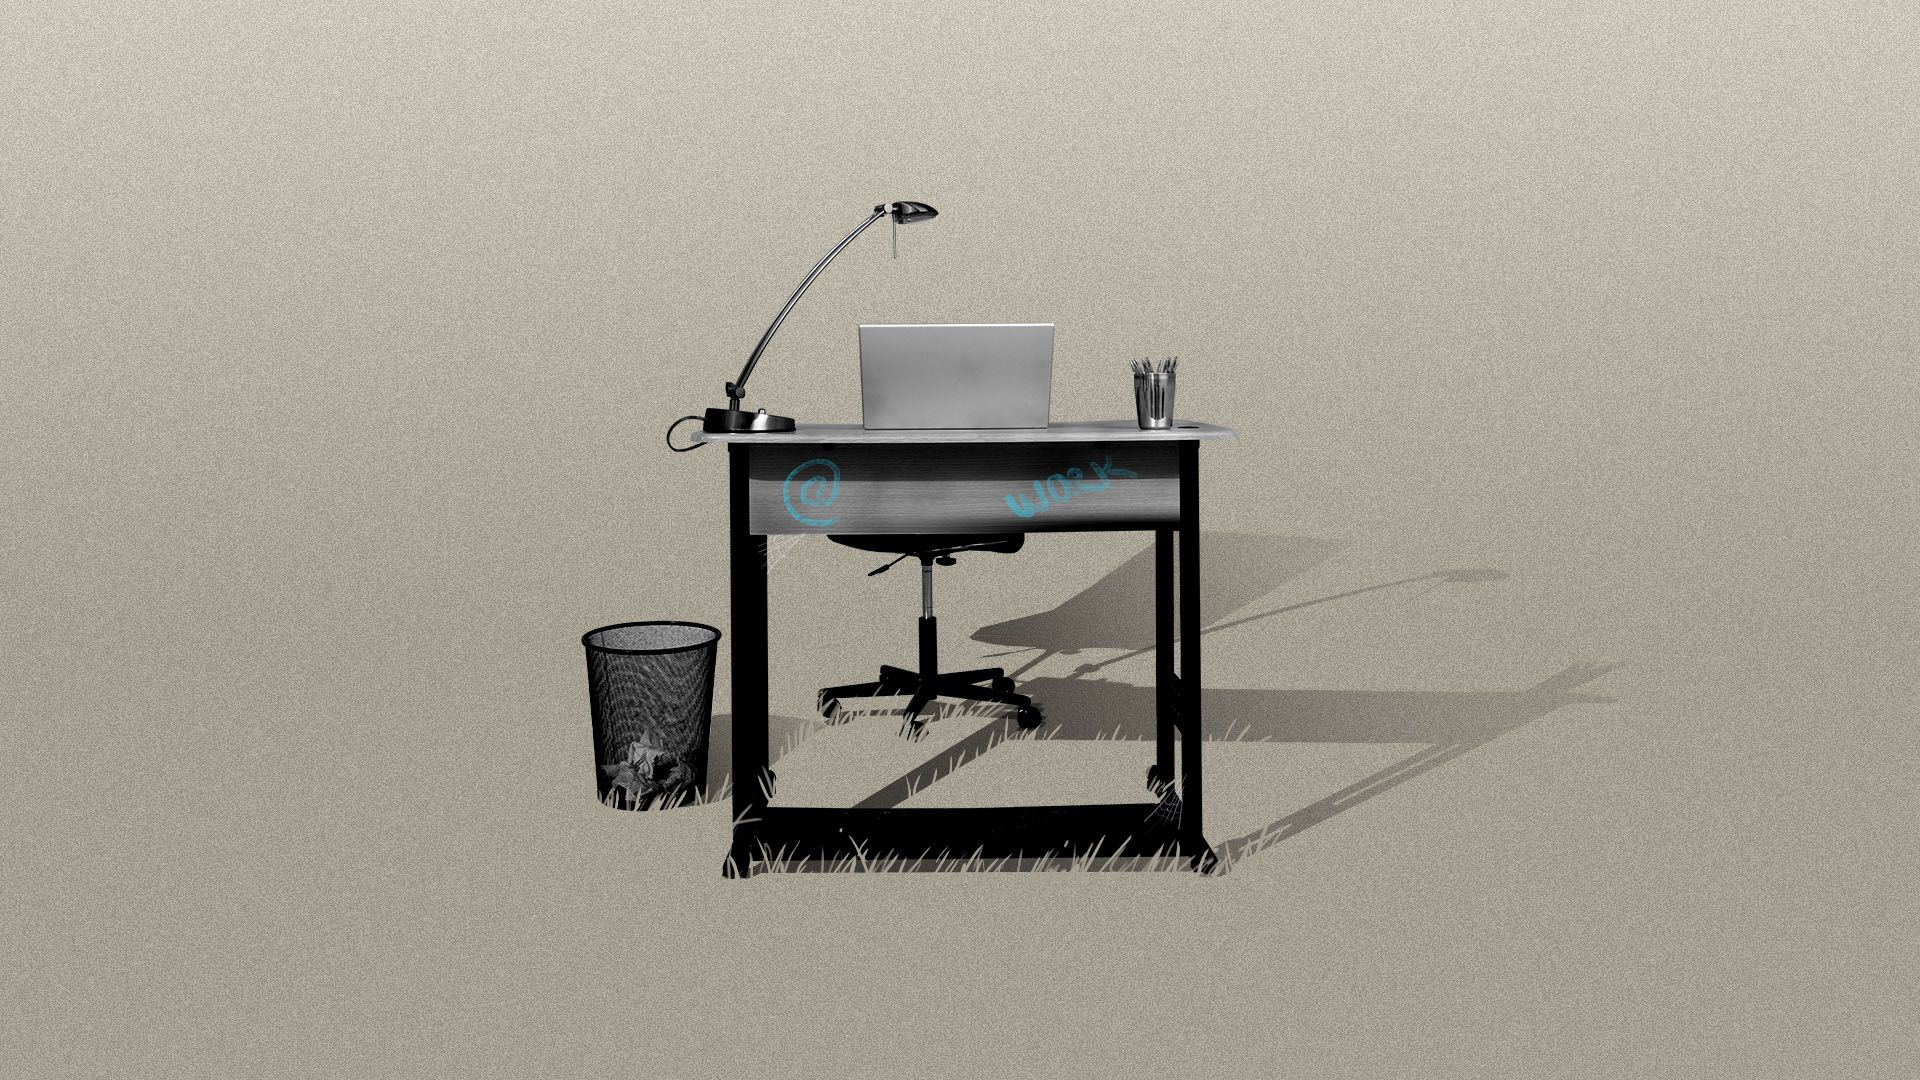 Illustration of an office desk sitting abandoned in a field